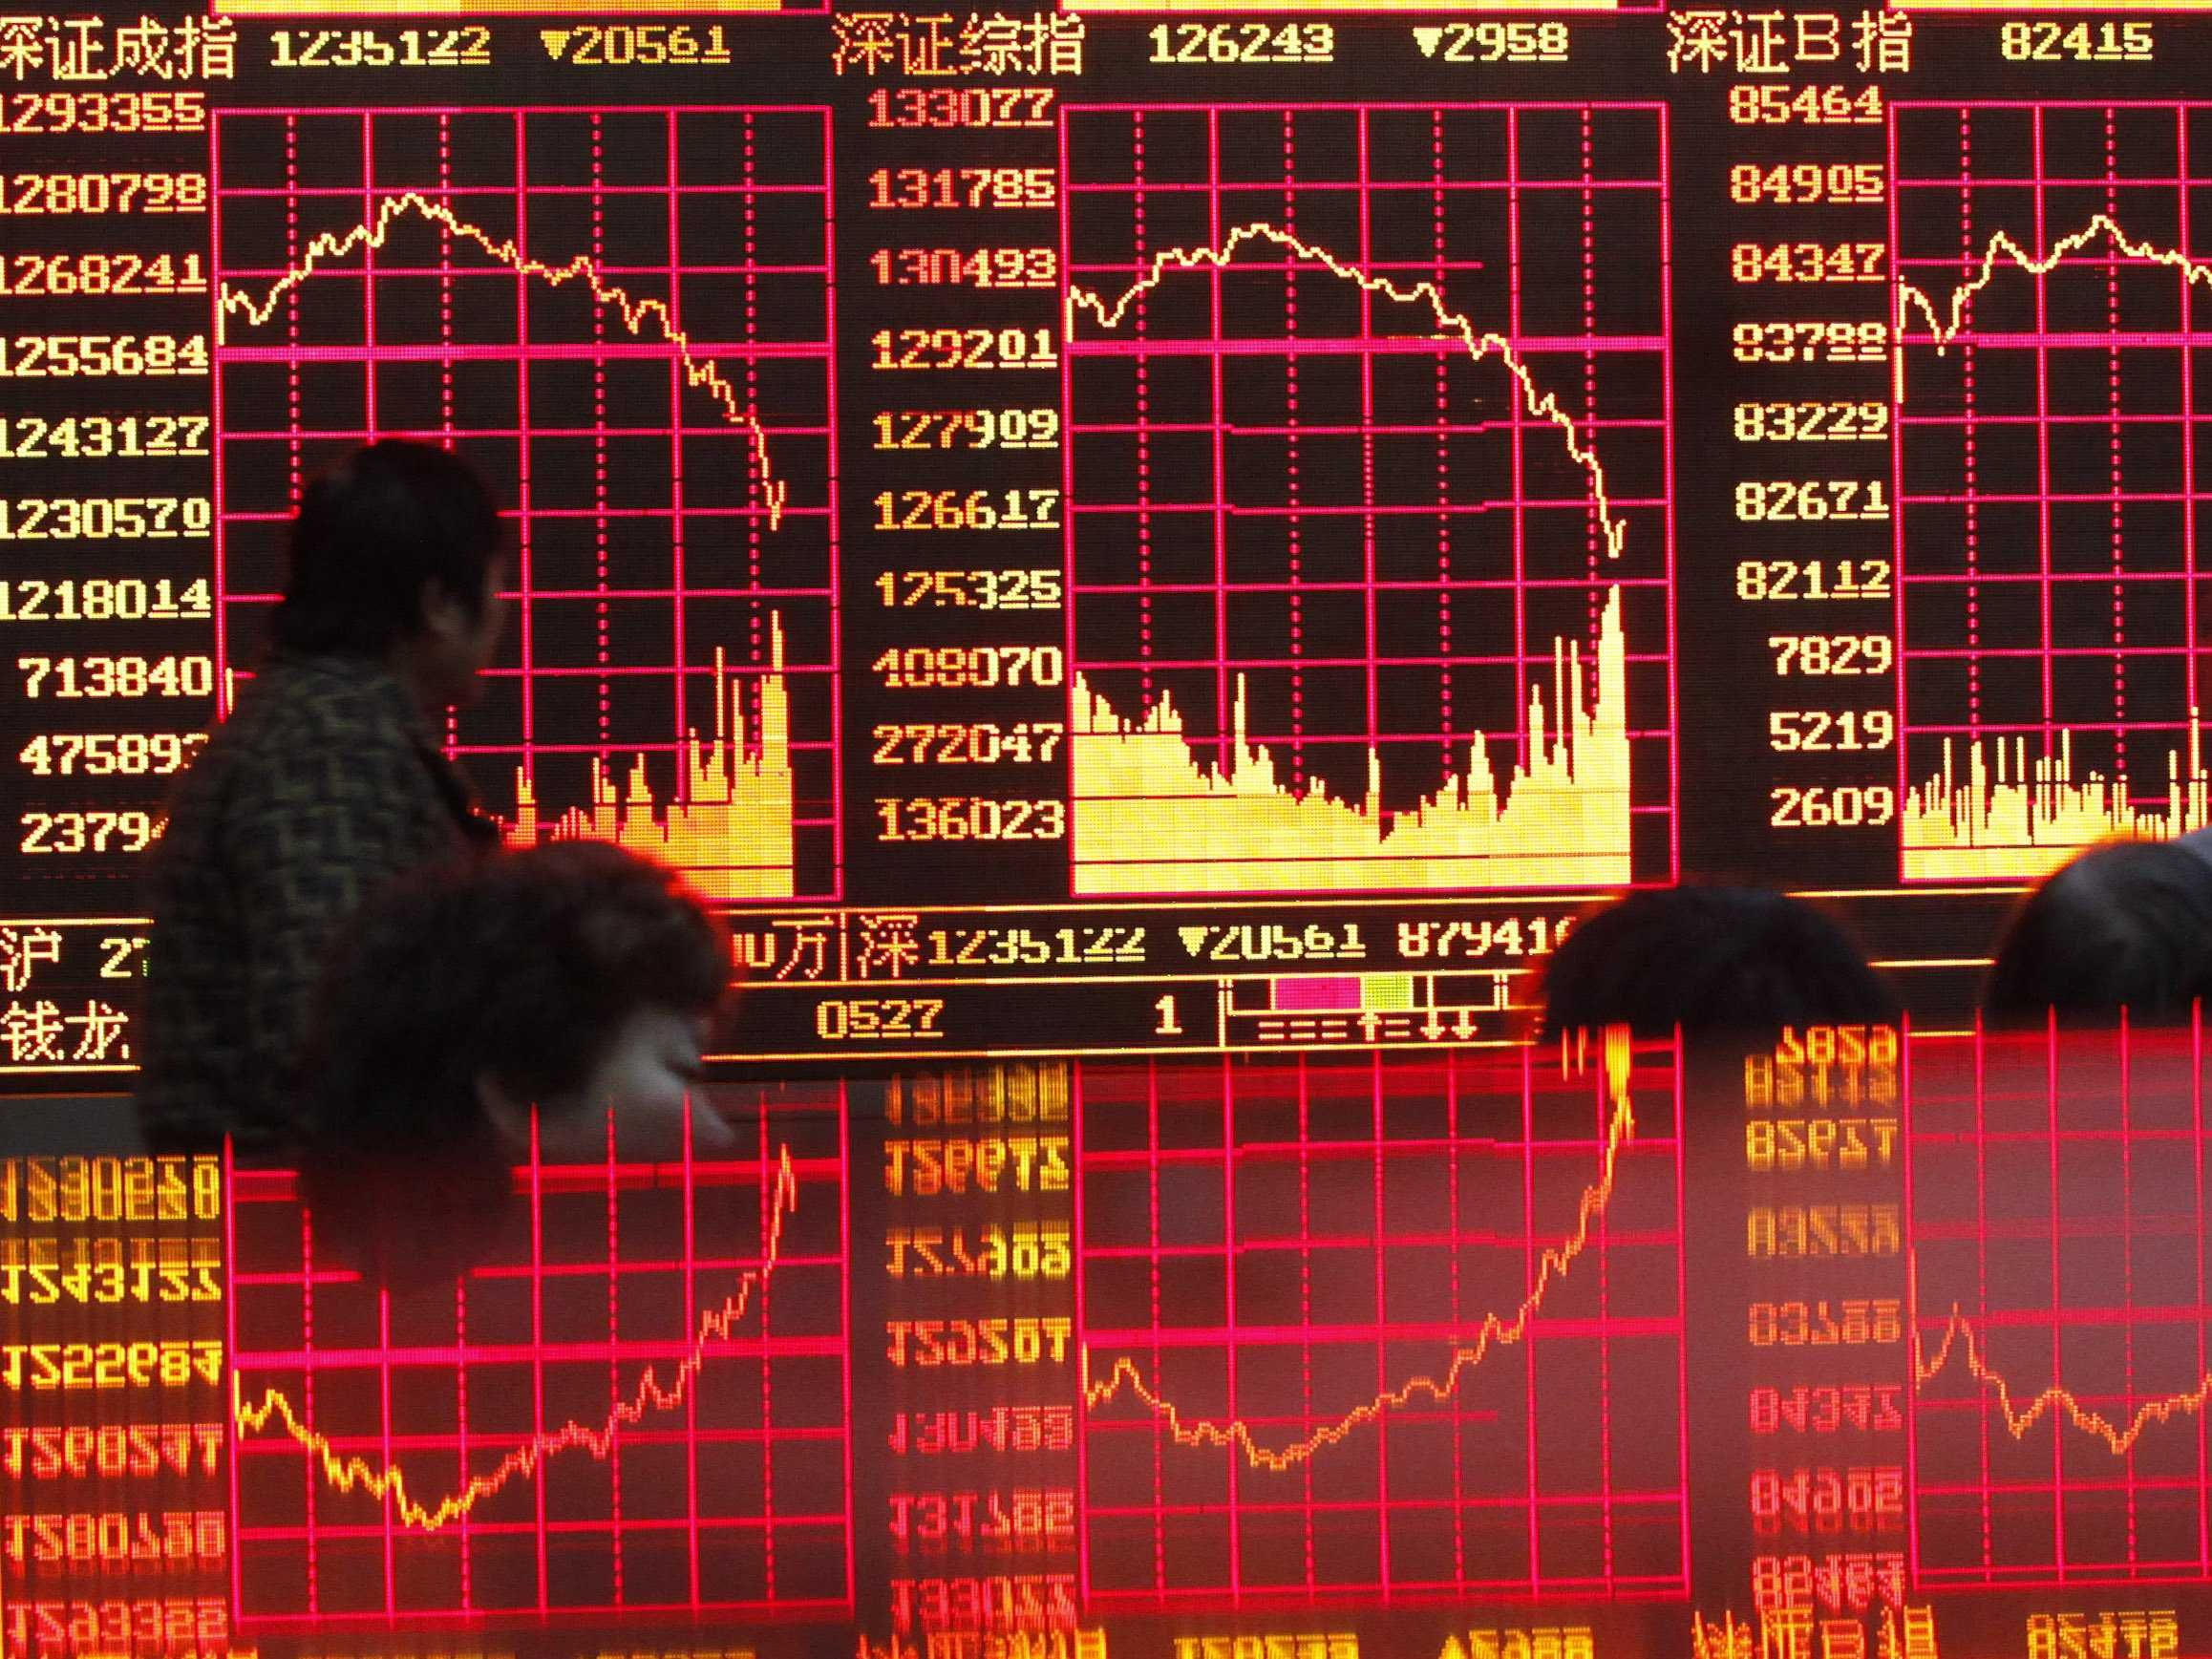 Shanghai Stock Exchange Is The World S 5th Largest Stock